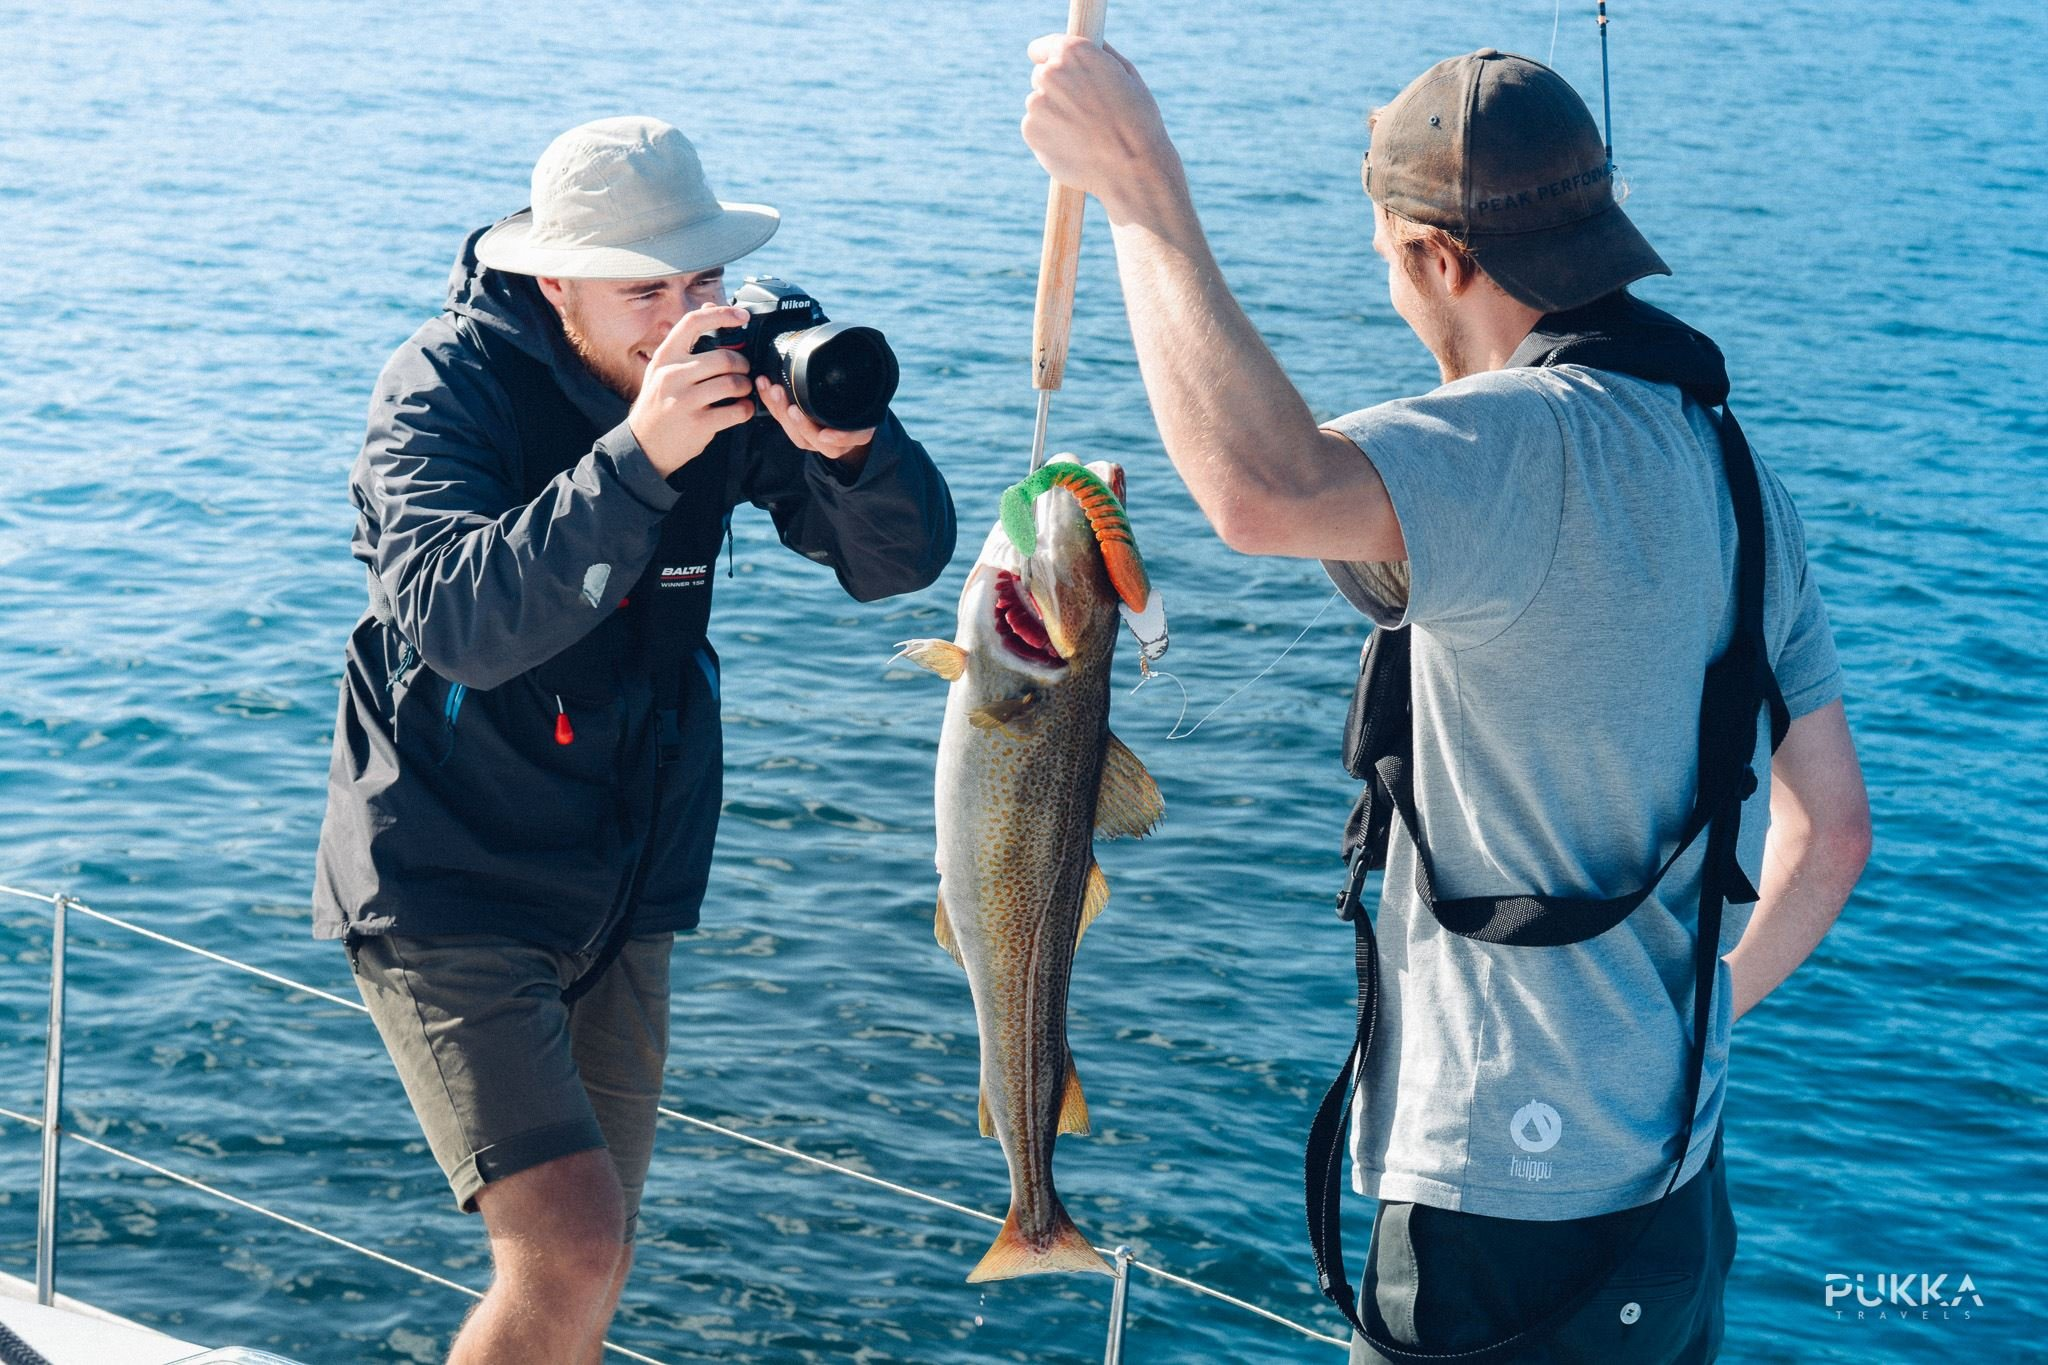 © Pukka Travels, Men having cought a fish and are taking photos of it